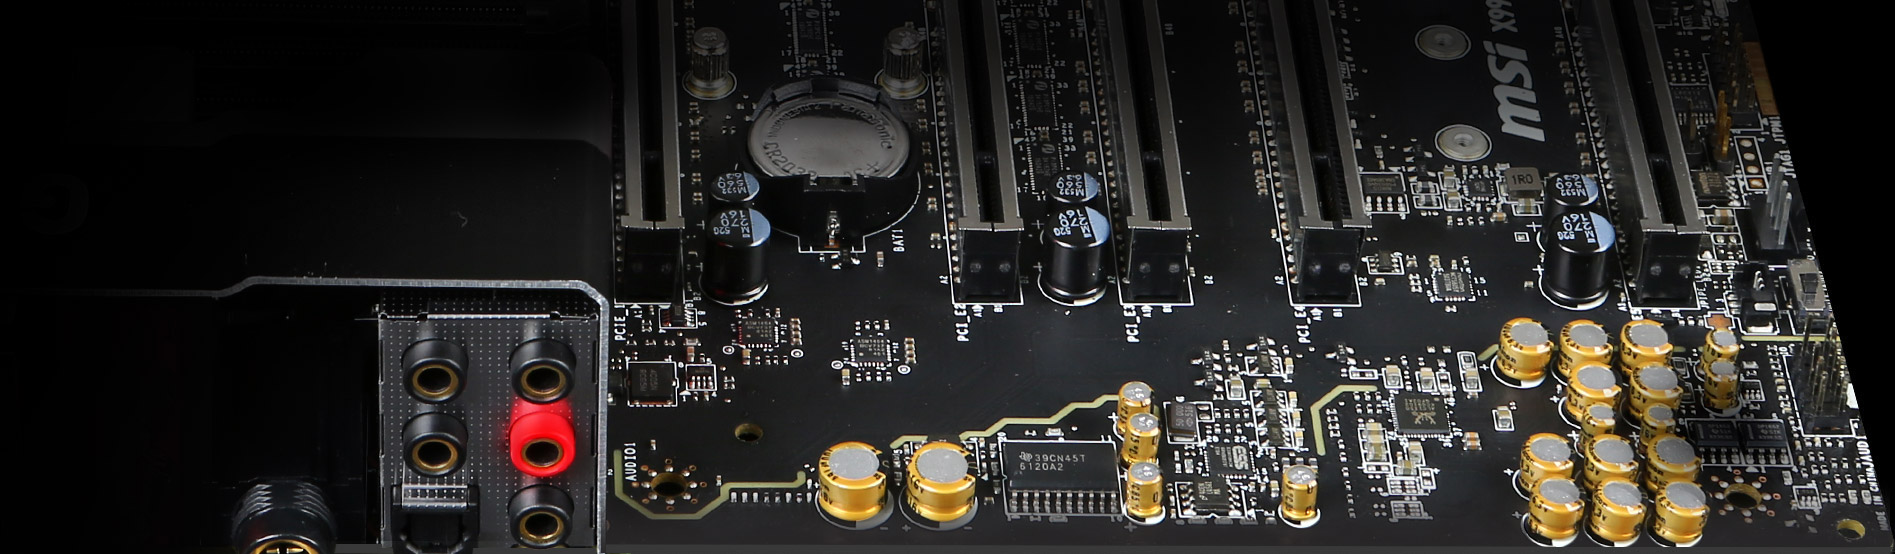 X99A GODLIKE GAMING CARBON | Motherboard - The world leader